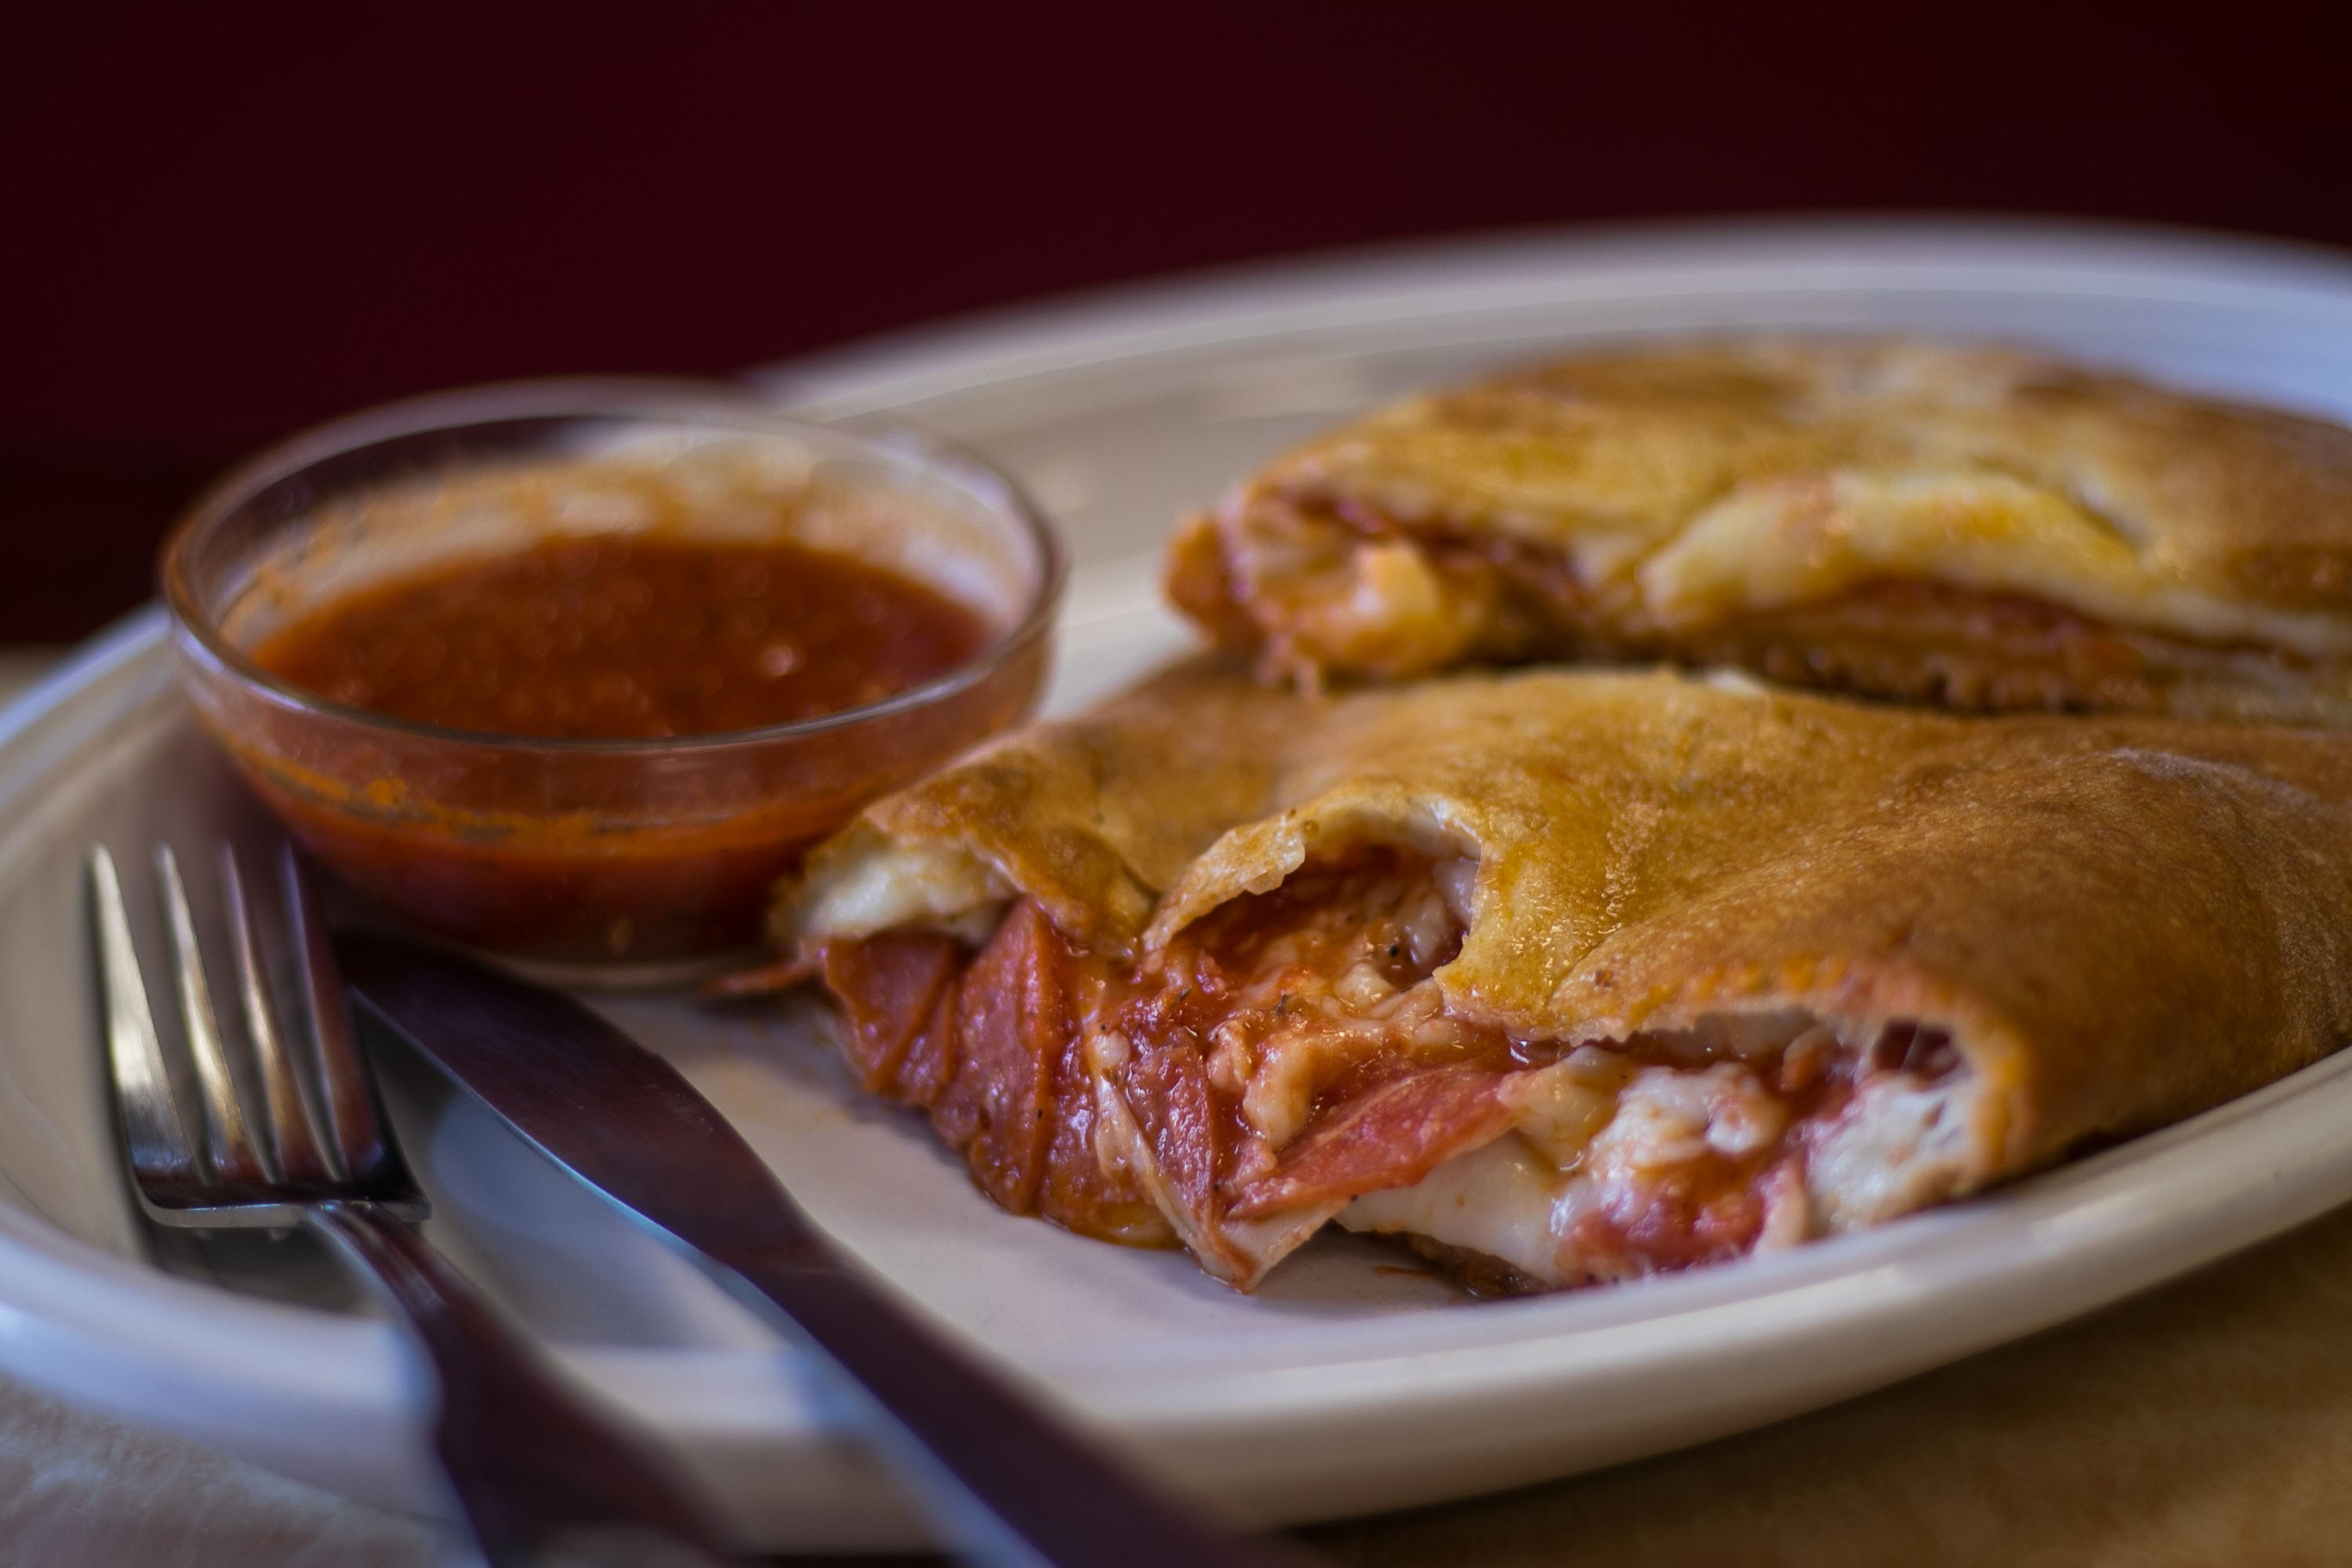 The Differences Between A Stromboli vs Calzone